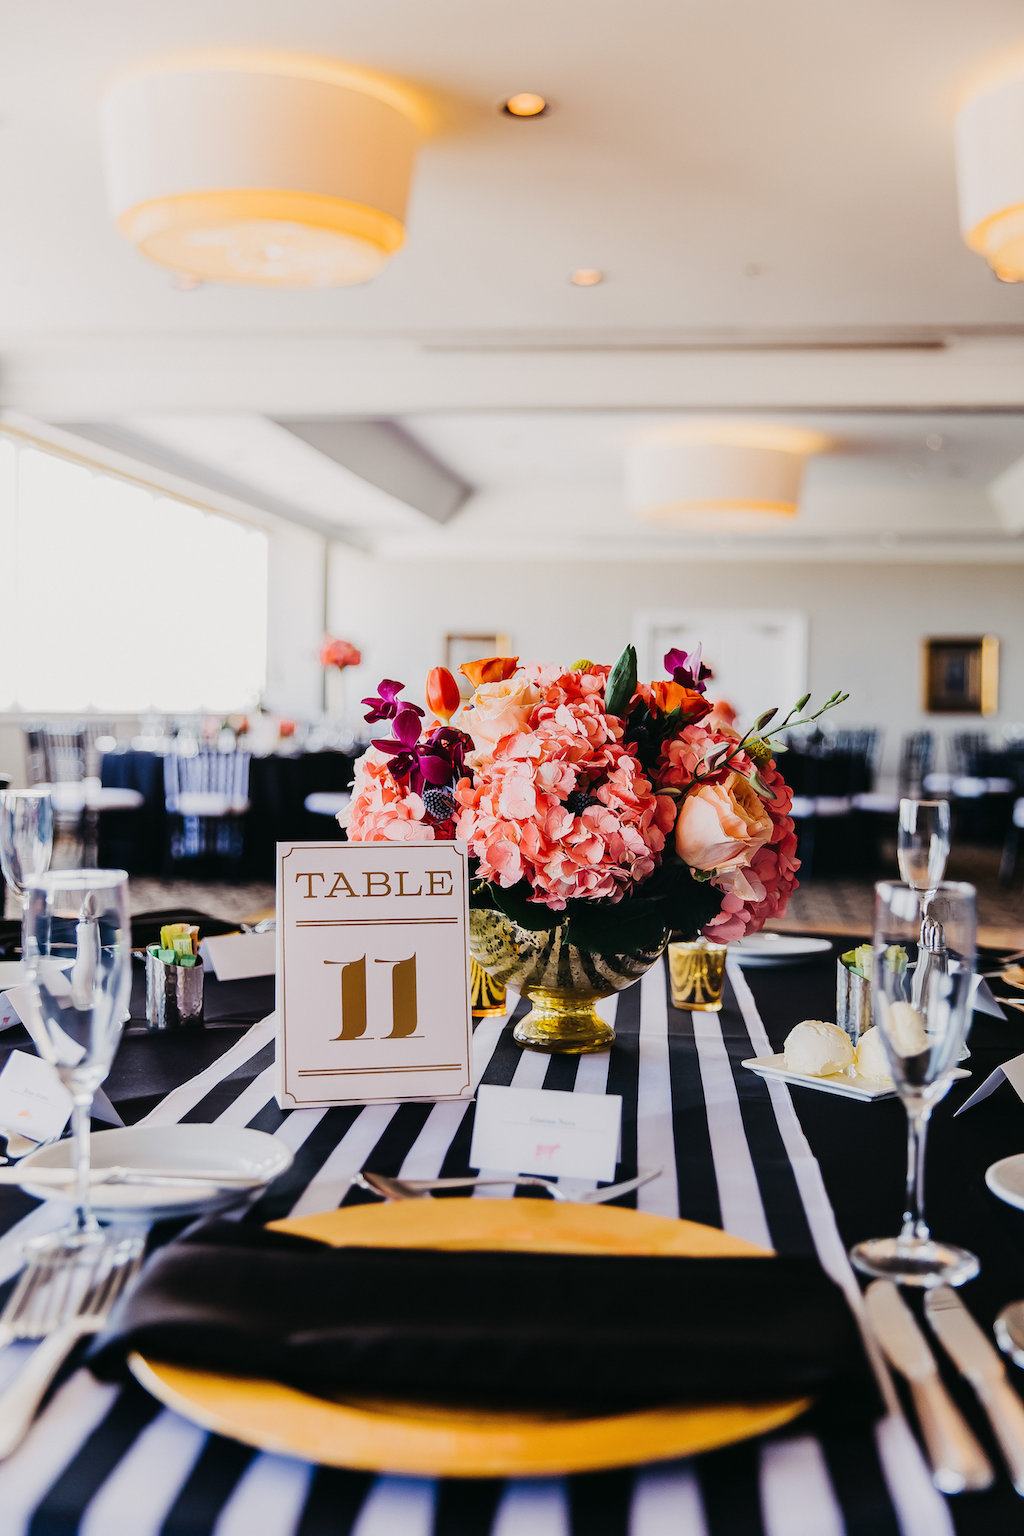 Black, White, and Gold Wedding Reception Table Decor with Elegant Printed Table Number Card, Low Tropical Floral Centerpiece in Round Gold Vase, and Striped Table Runner   Private Tampa Bay Wedding Venue The Centre Club